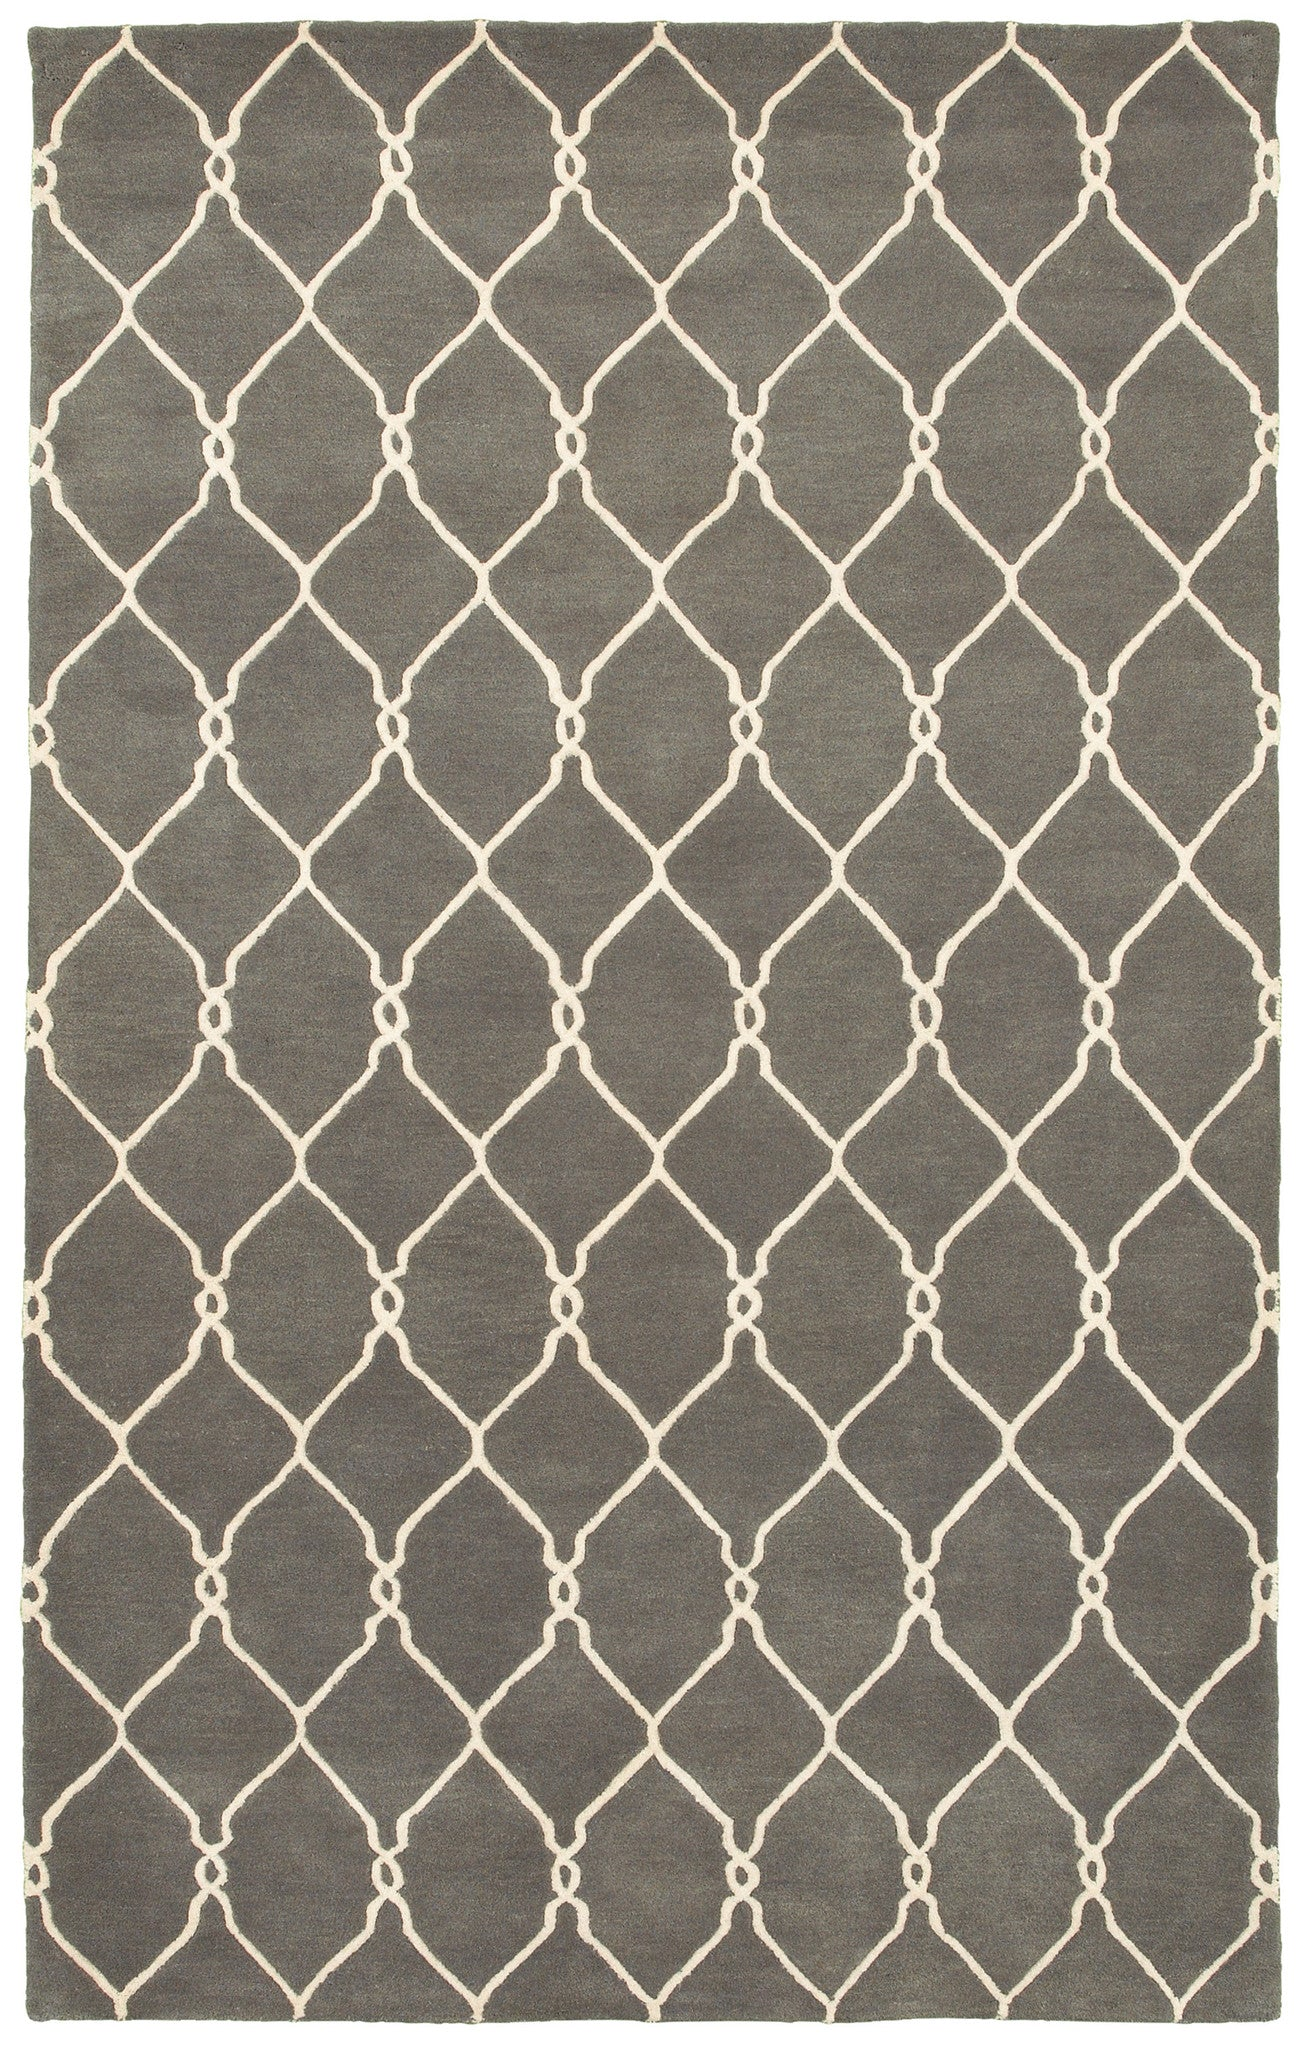 LR Resources Jaali 04904 Gray Area Rug